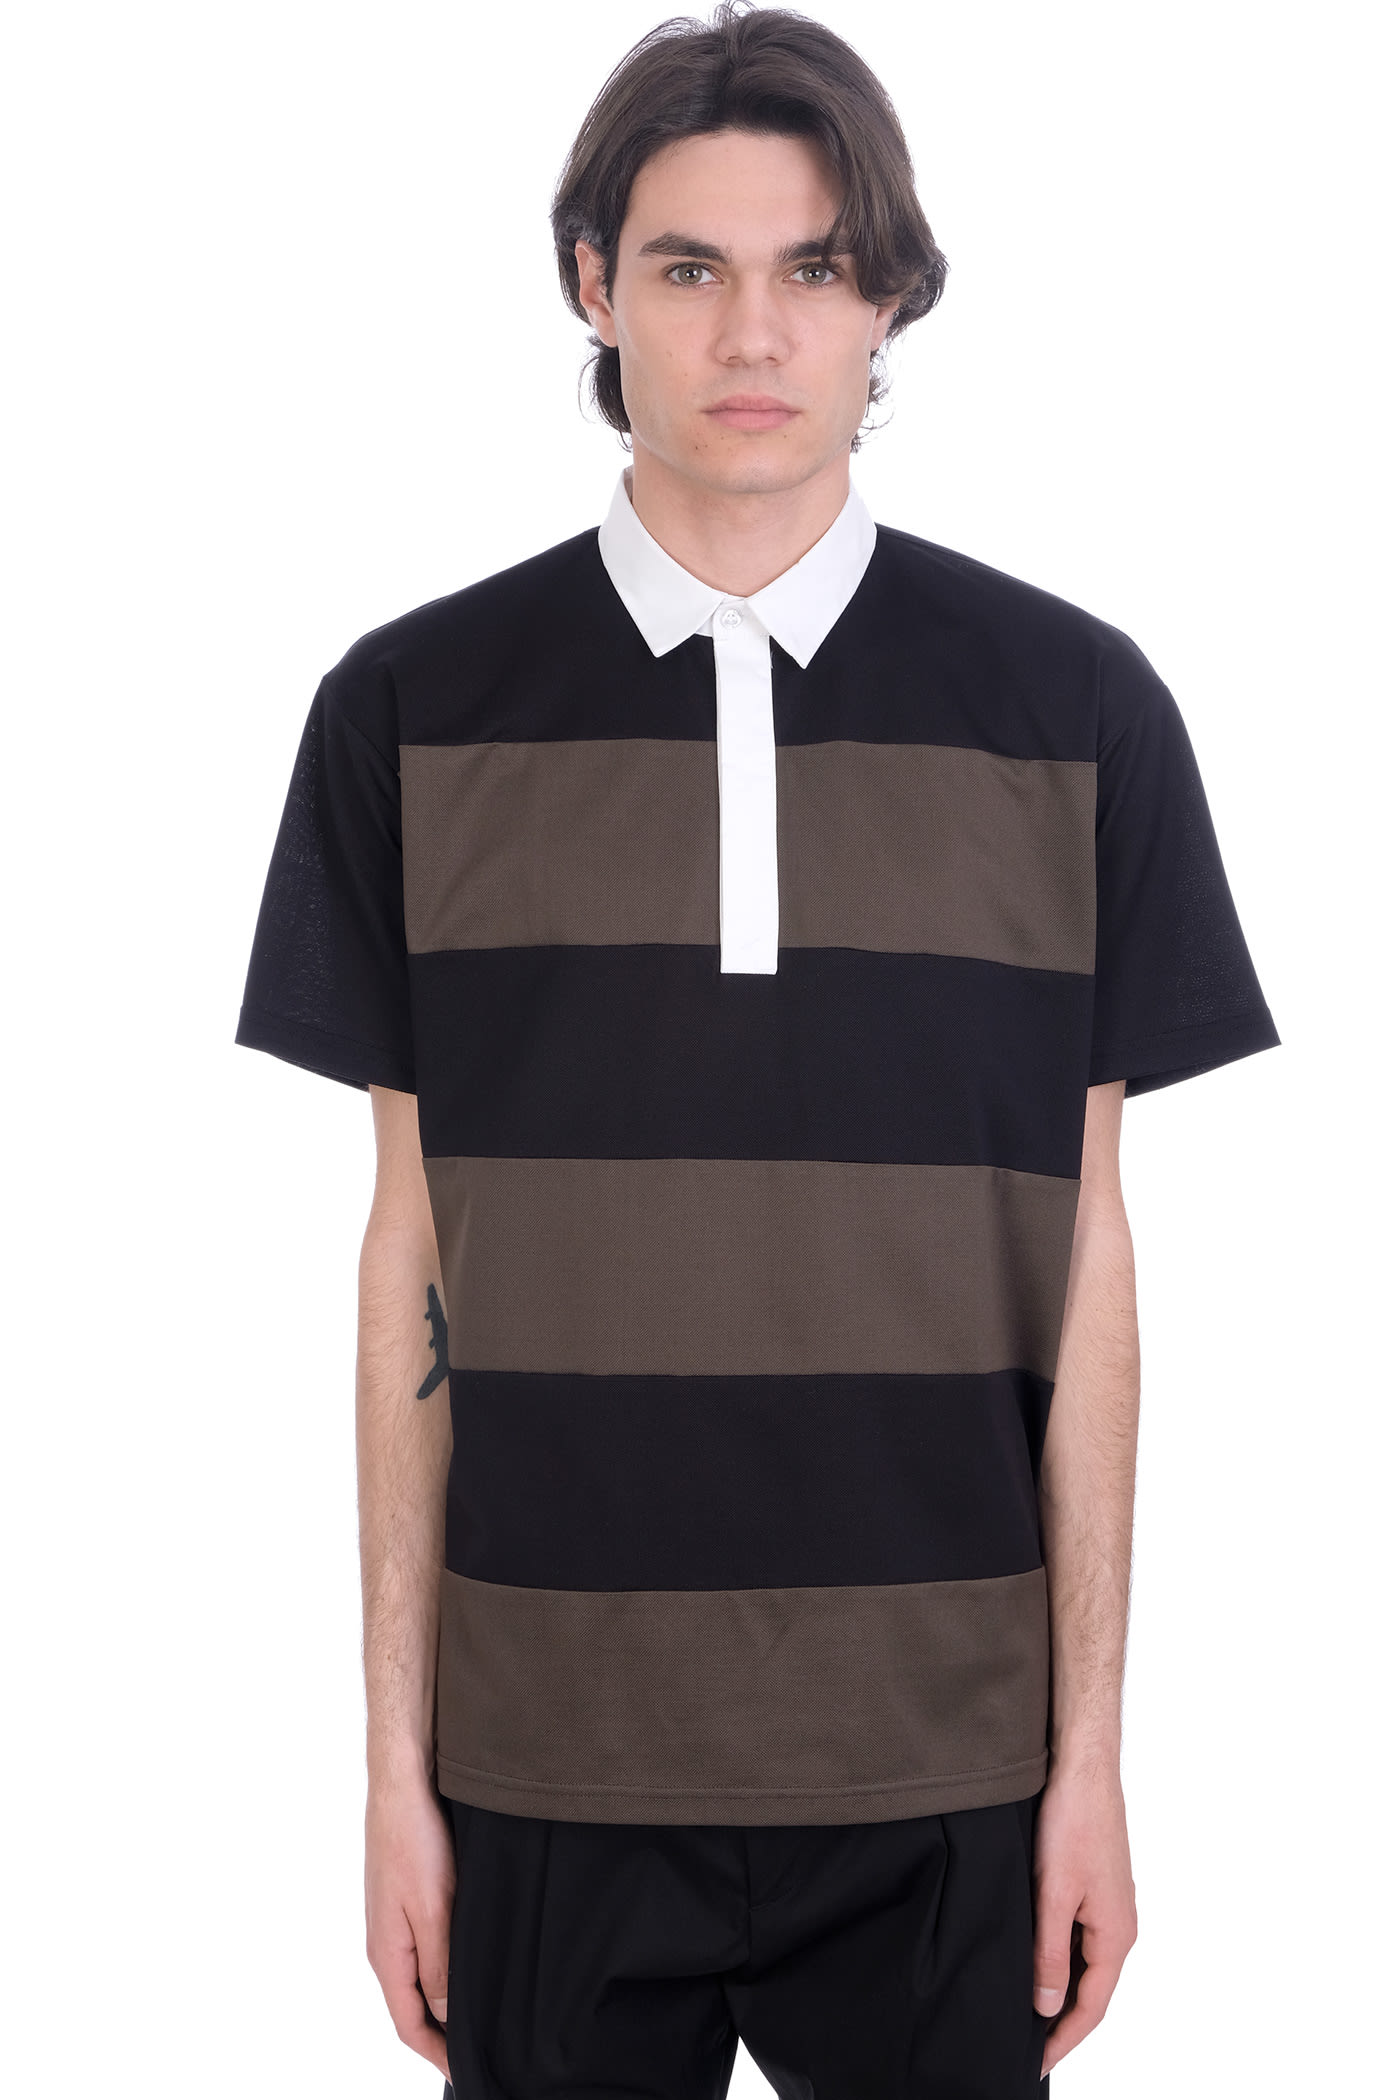 Low Brand Polo In Black Cotton